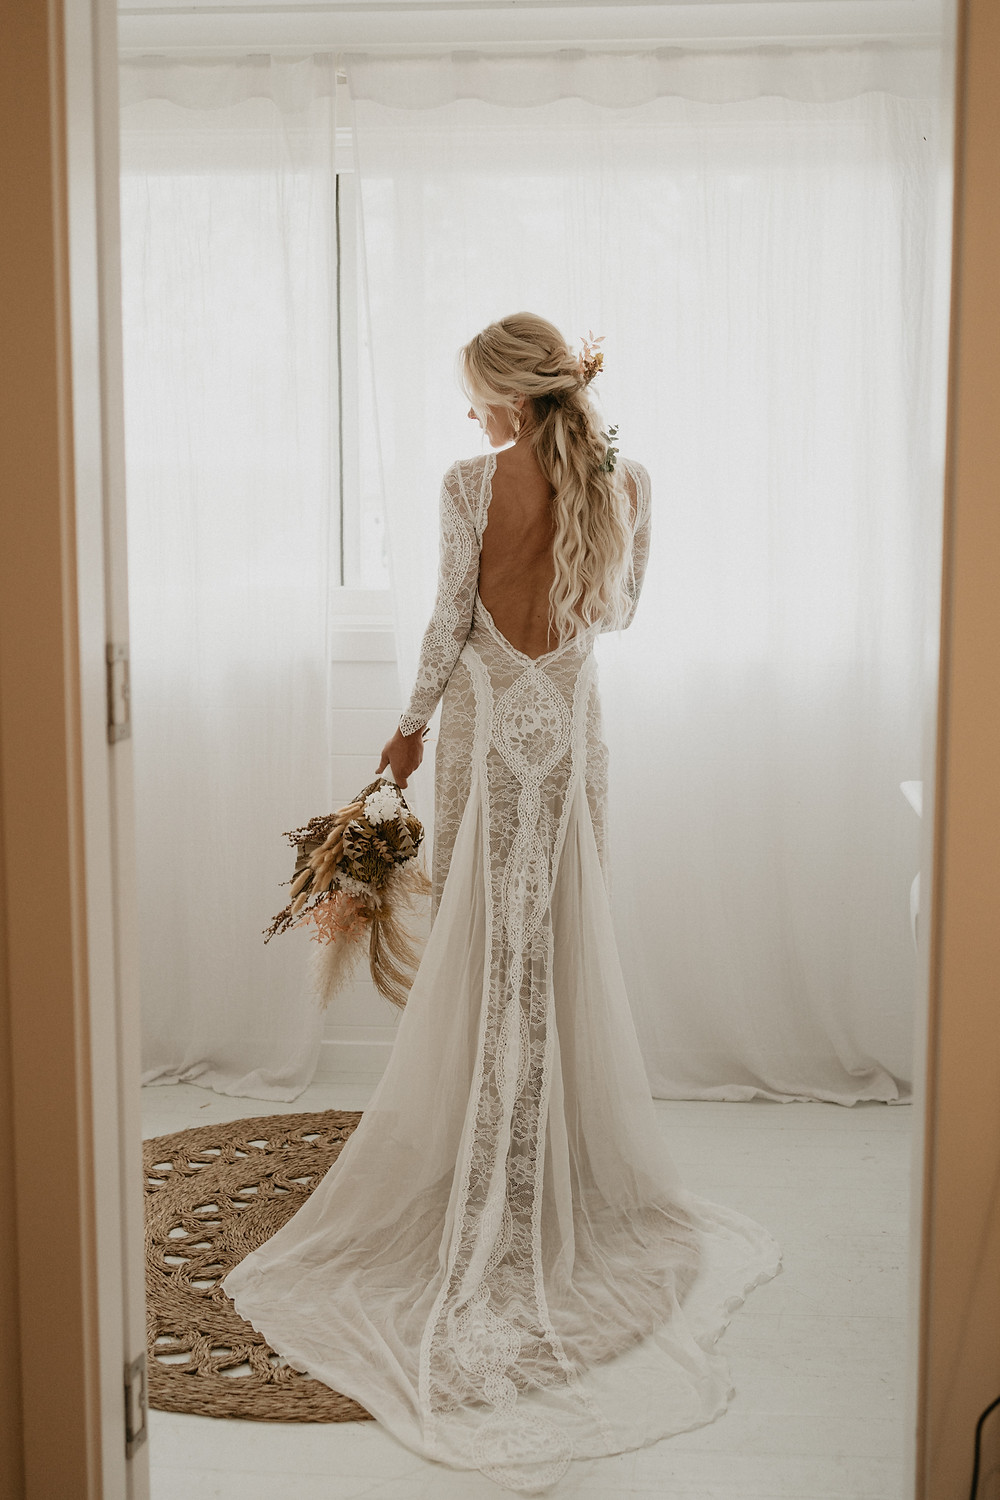 young bride in boho style dress and wedding bouquet